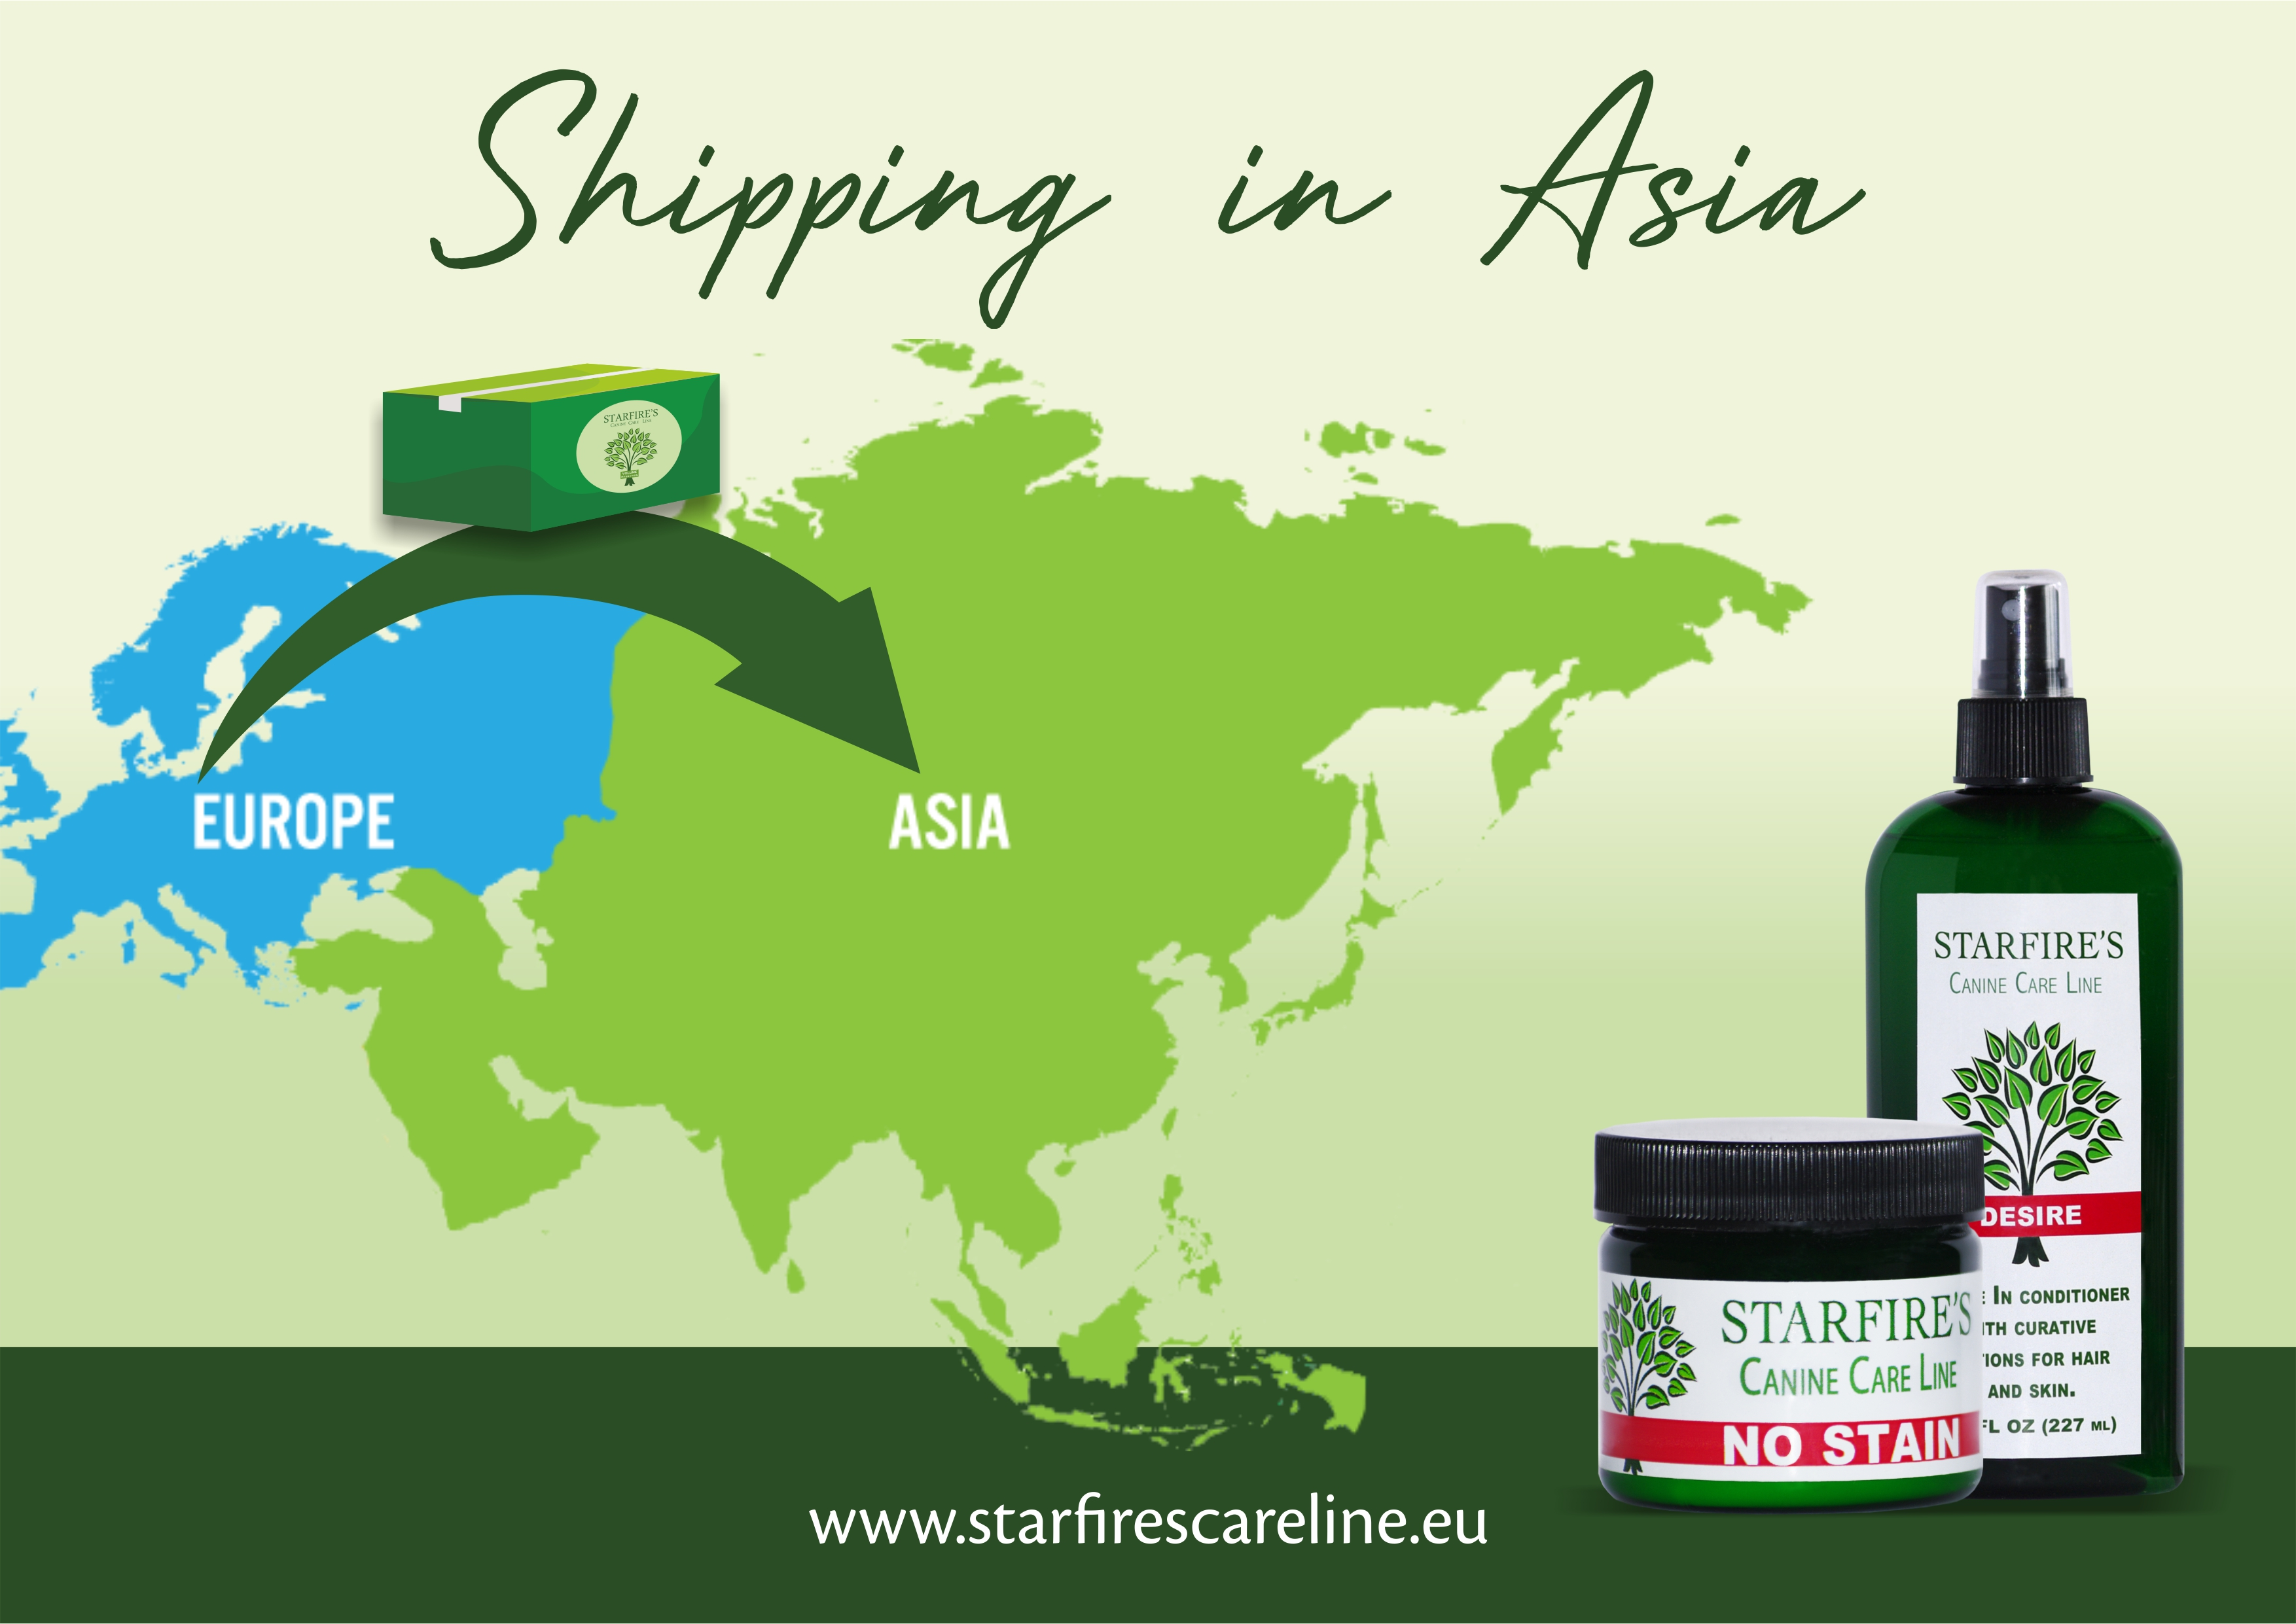 Canine Care Line Now Available In Asia